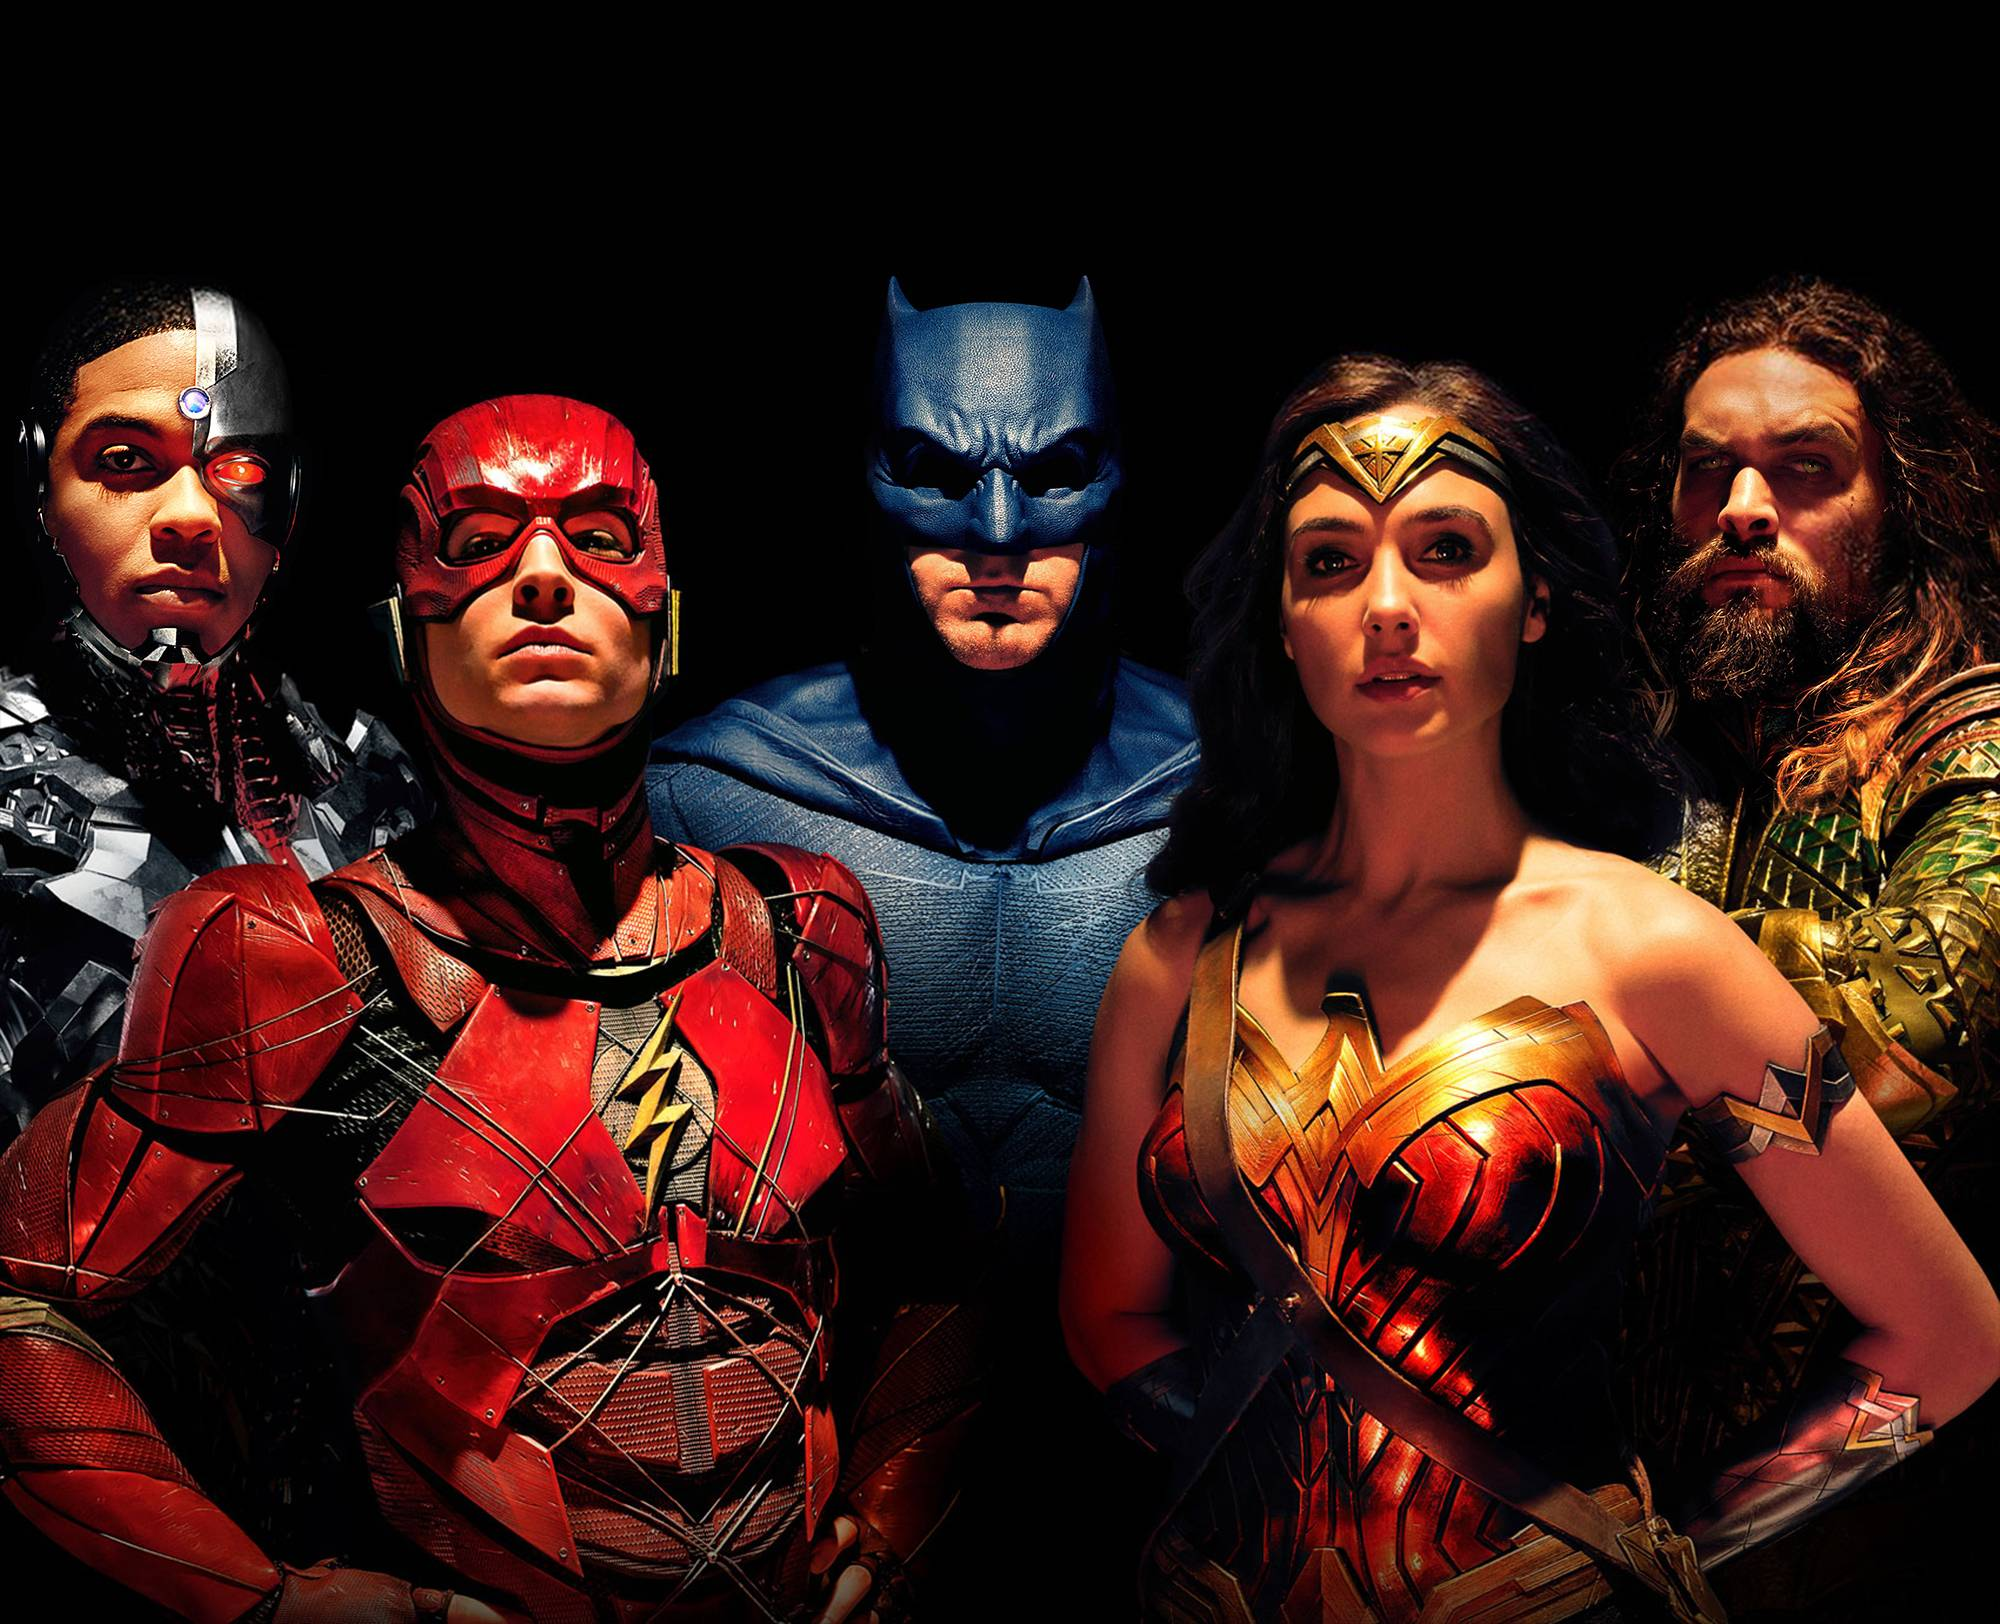 Hd Wallpapers Of Justice League Wallpaper Cave